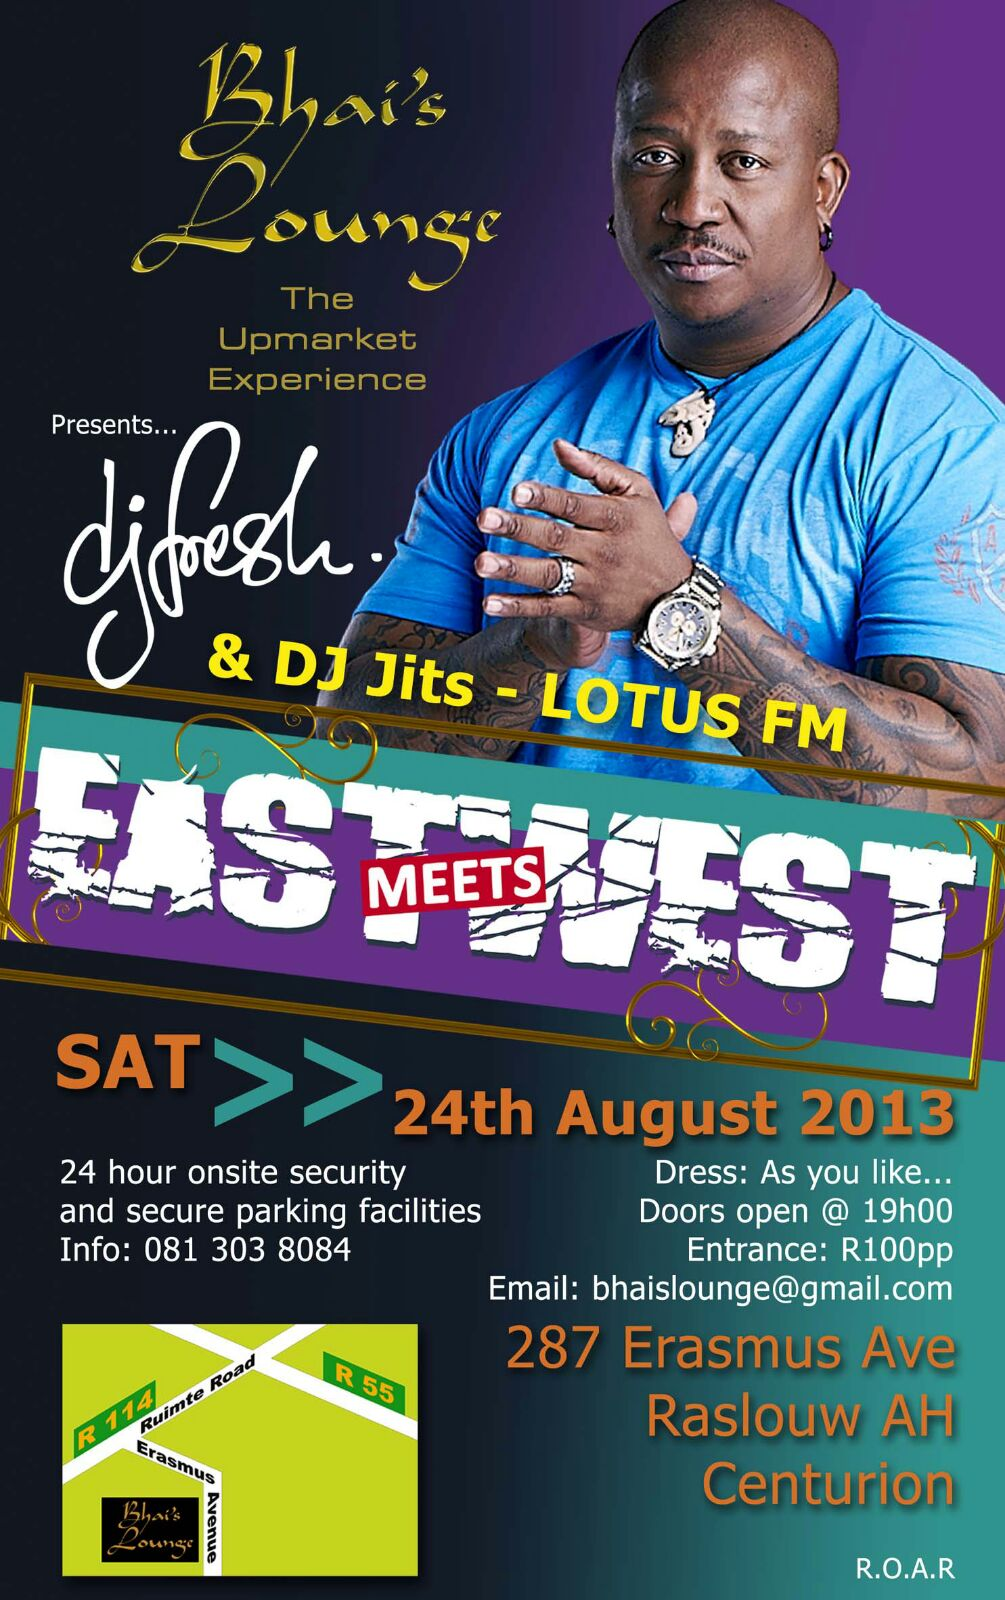 East Meets West 2013